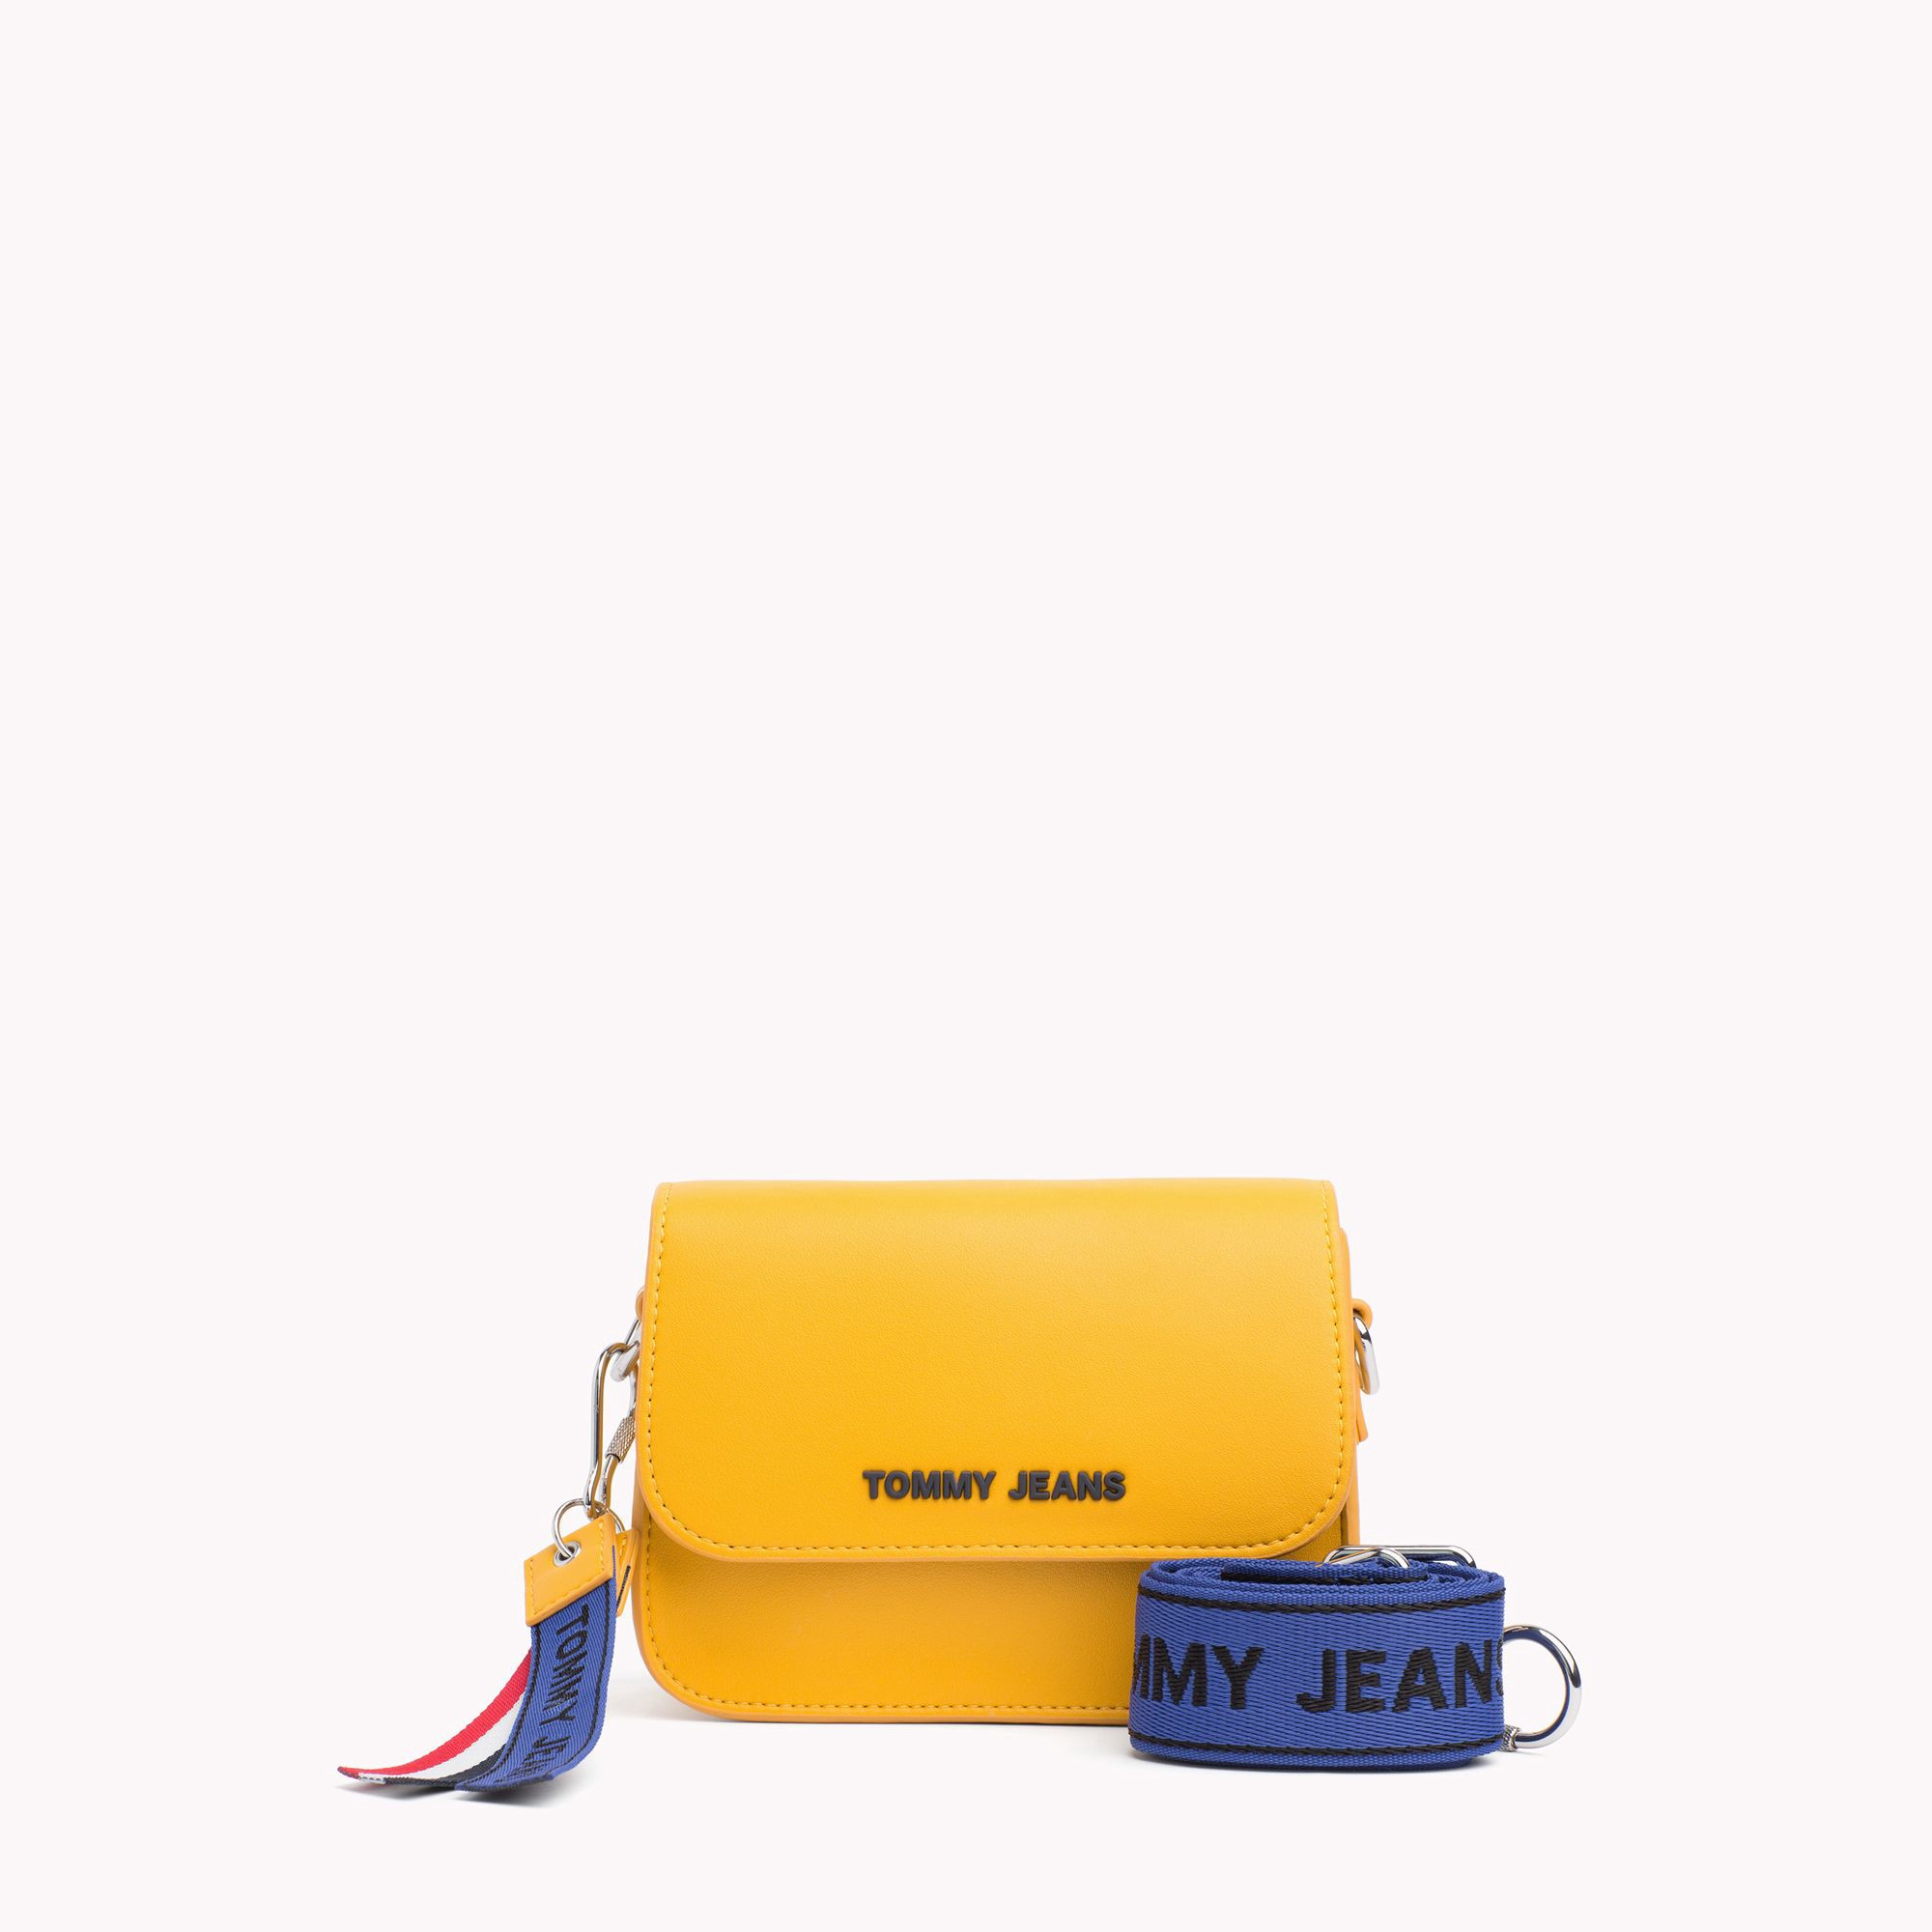 e16169682cbc Tommy Jeans Structured Crossbody by Tommy Hilfiger in 2019 ...